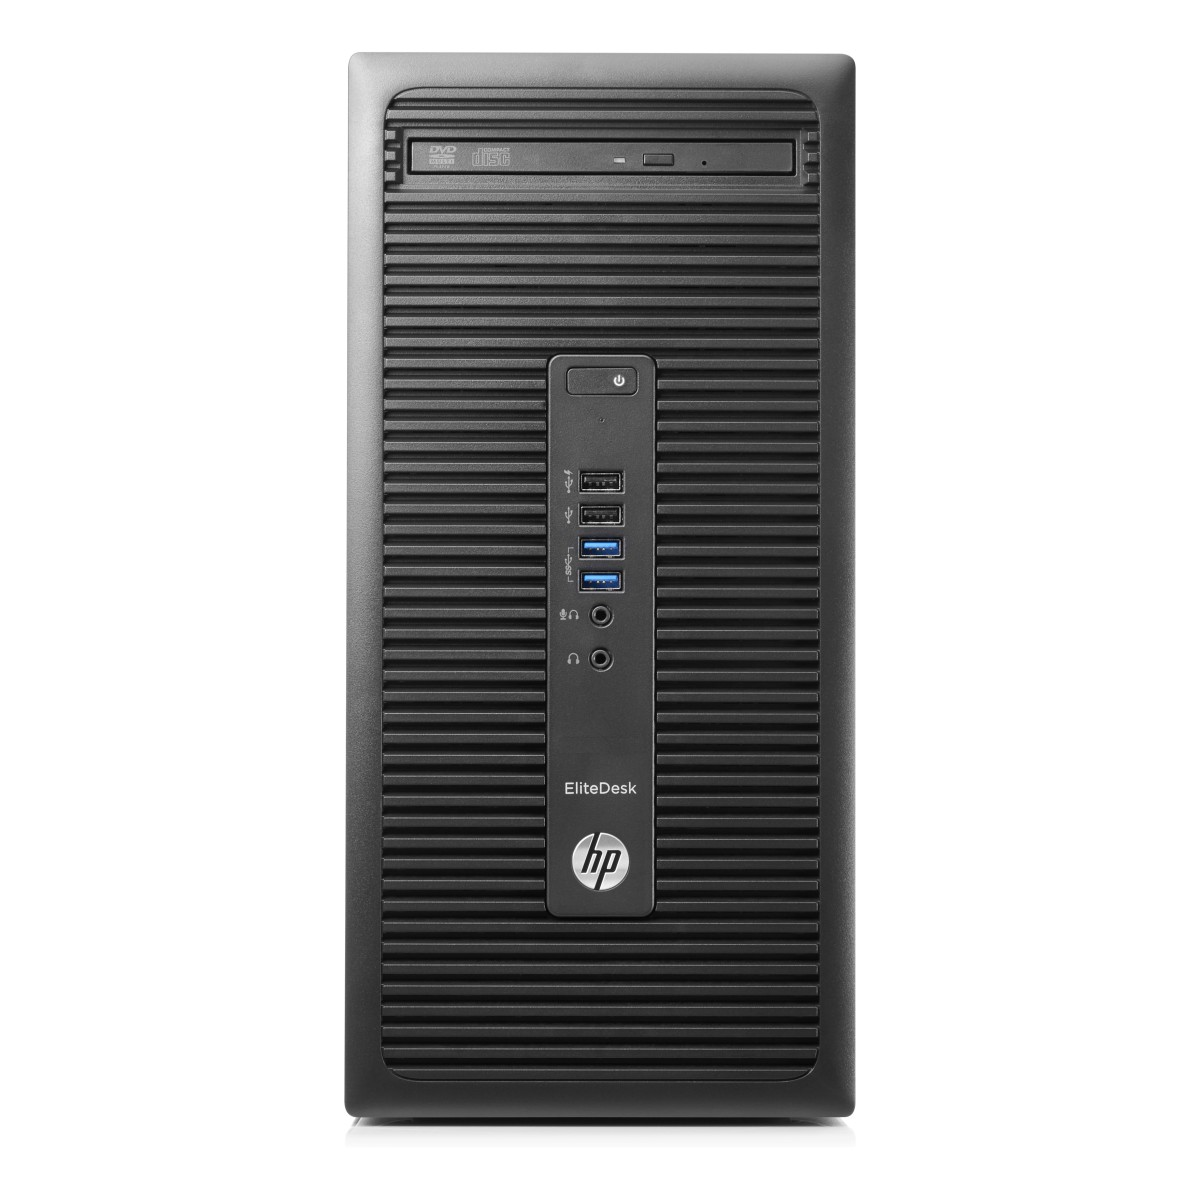 HP EliteDesk 705 G3 MT R3-1200/8GB/25SSD/DVD/3NBD/W10P